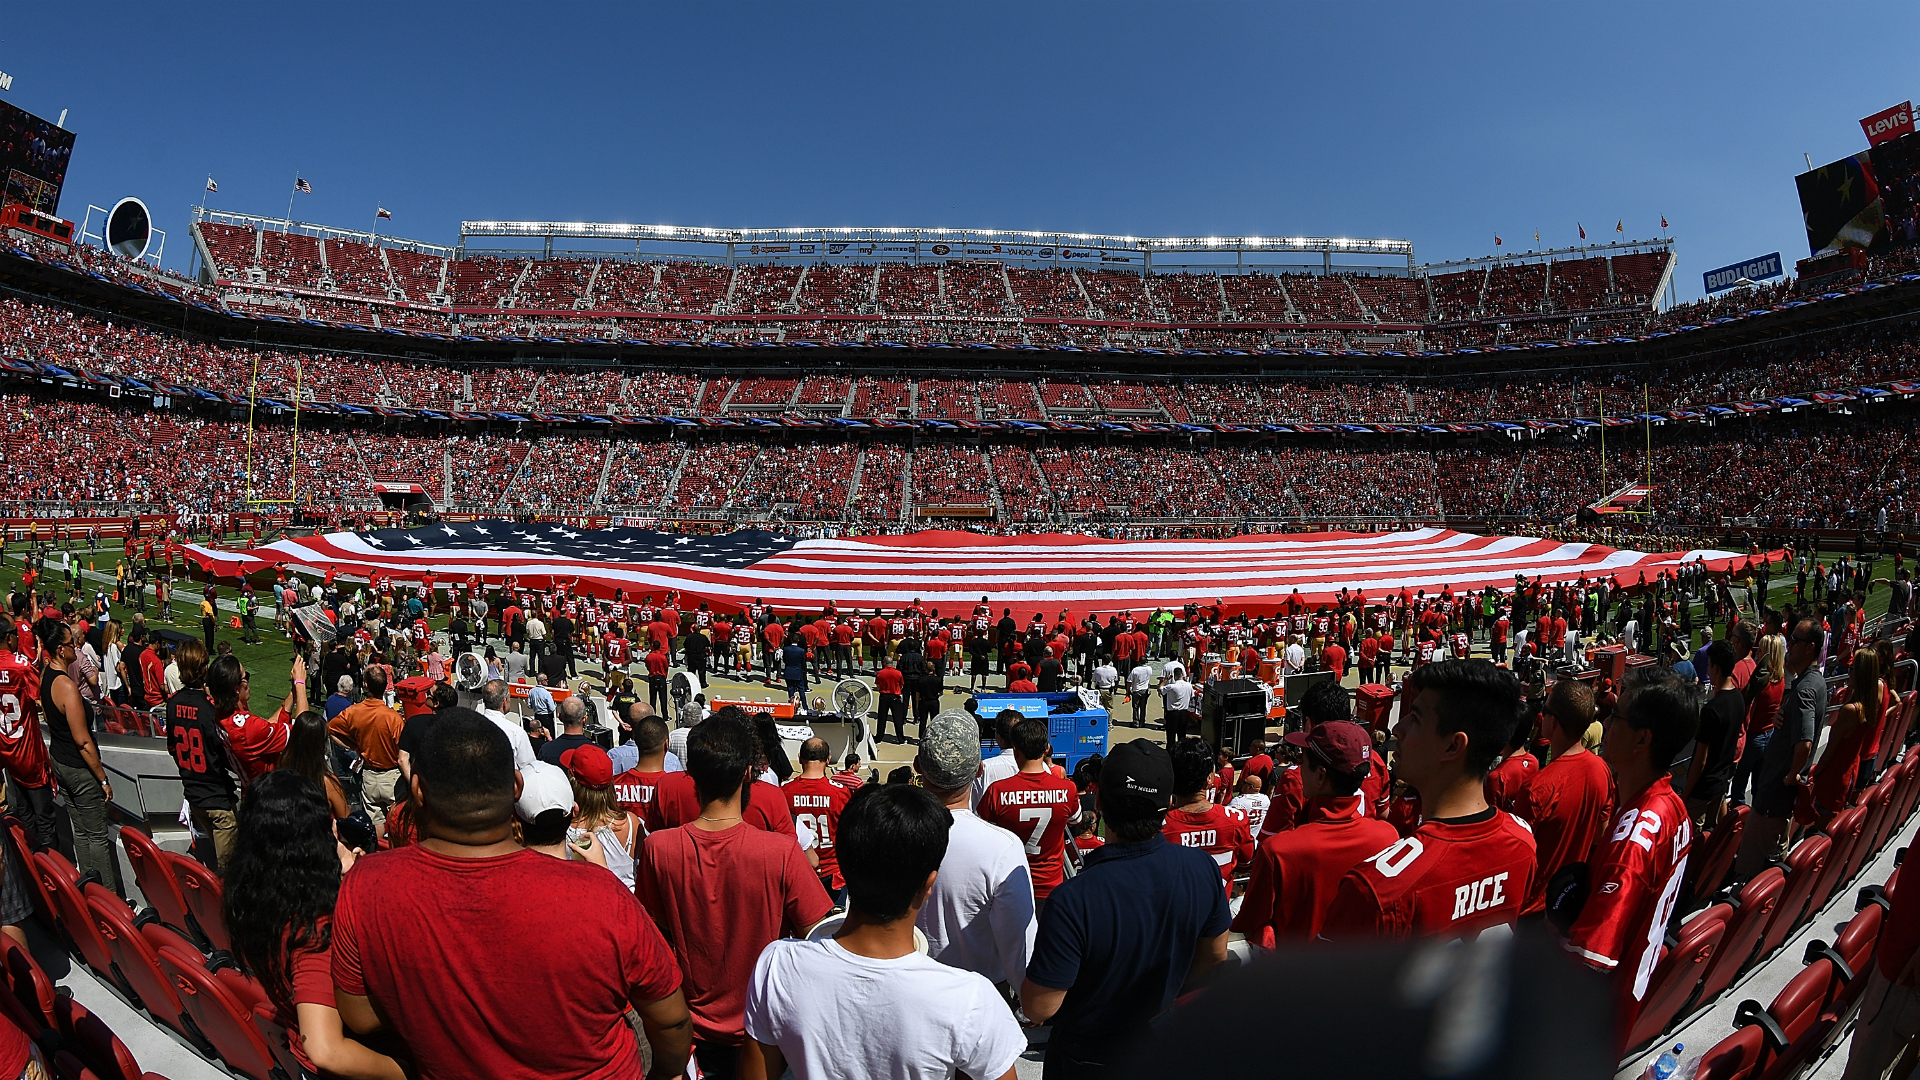 NFL's Brand Favorability Plummets In Light Of Protests